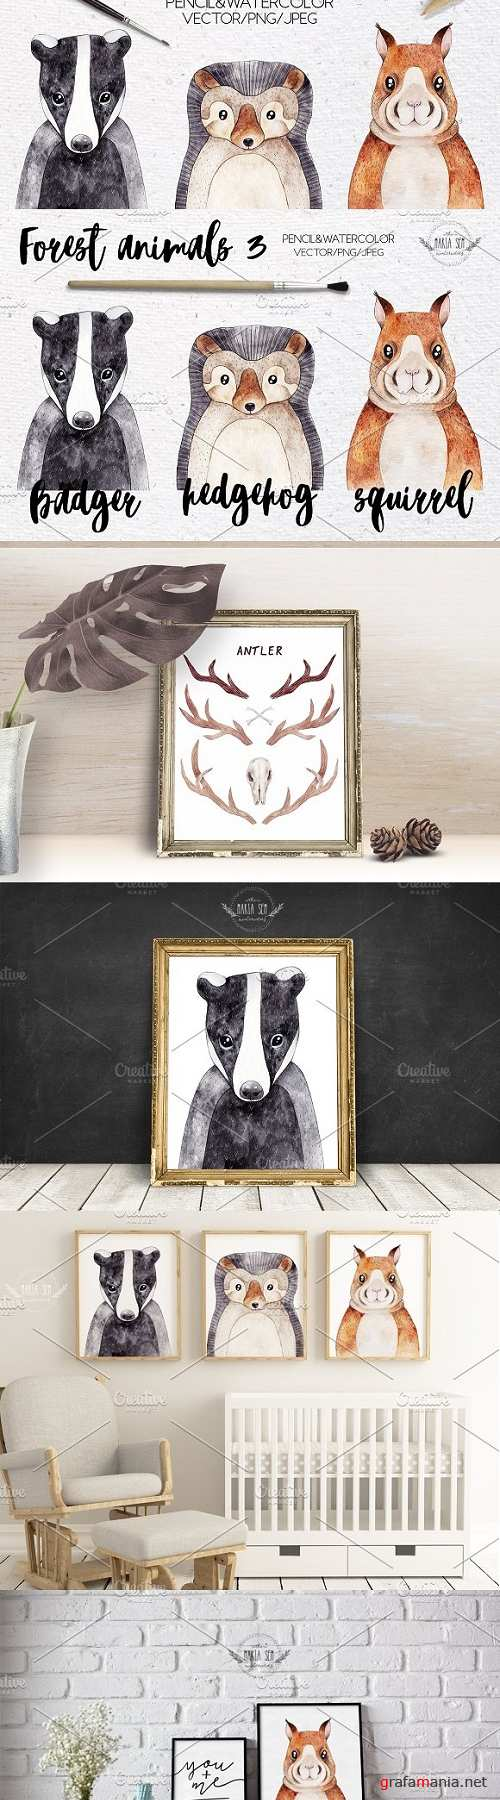 Forest animals VOL.3 Vector included - 1813264